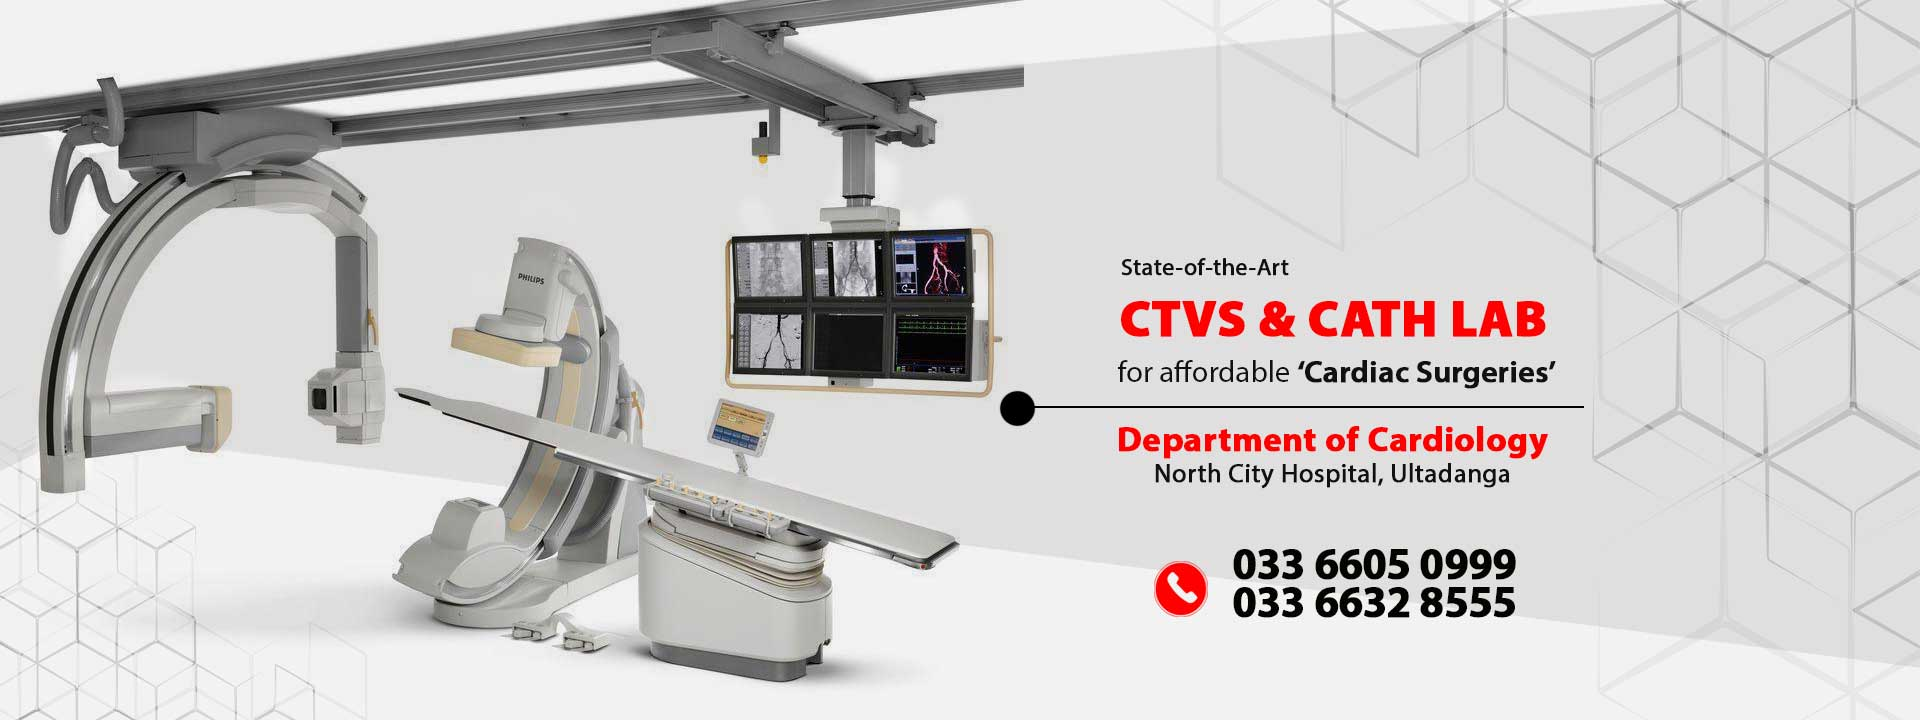 Cath Lab CTVS at North City Hospital